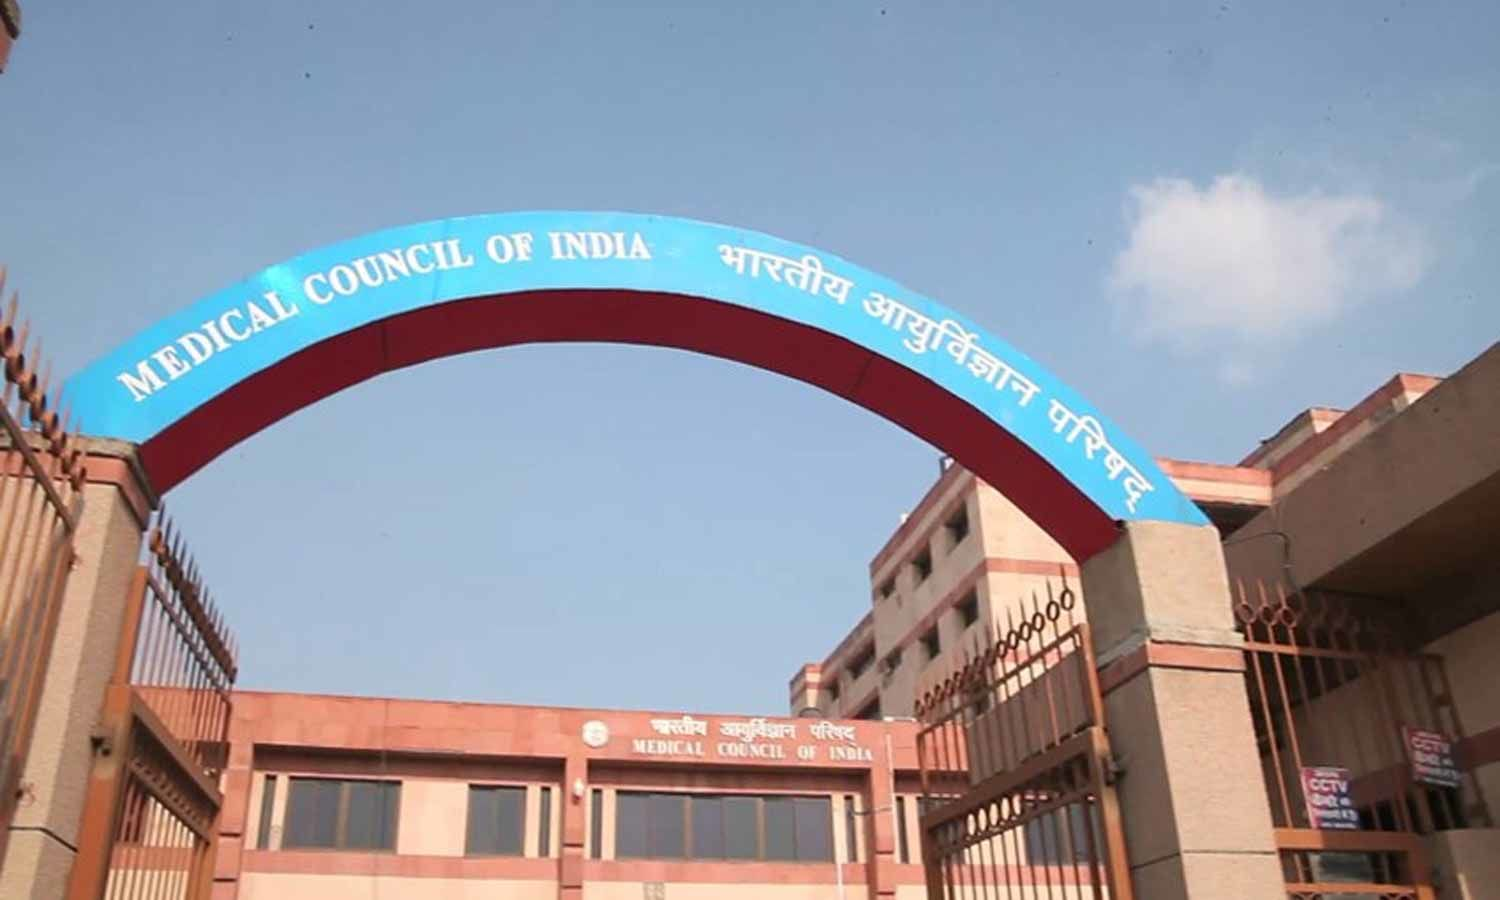 MCI files 3 applications in Supreme Court on MBBS, PG Medical and SS admissions